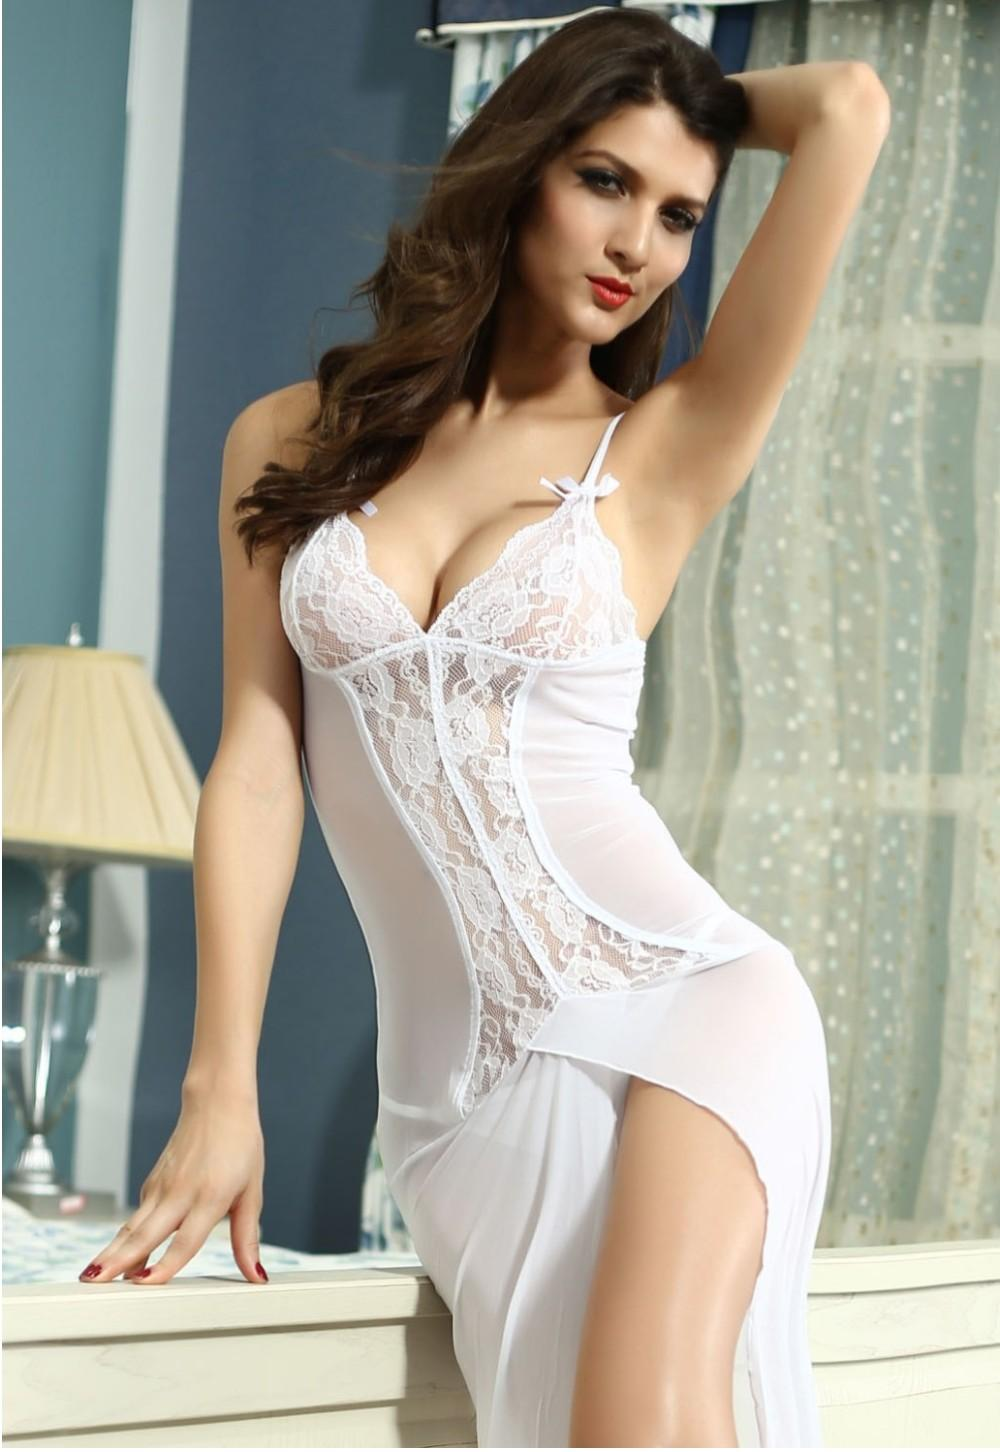 Women Clothing Bride to Be Sleepwear Gown LC6143 Sleep Dress Sexy ...